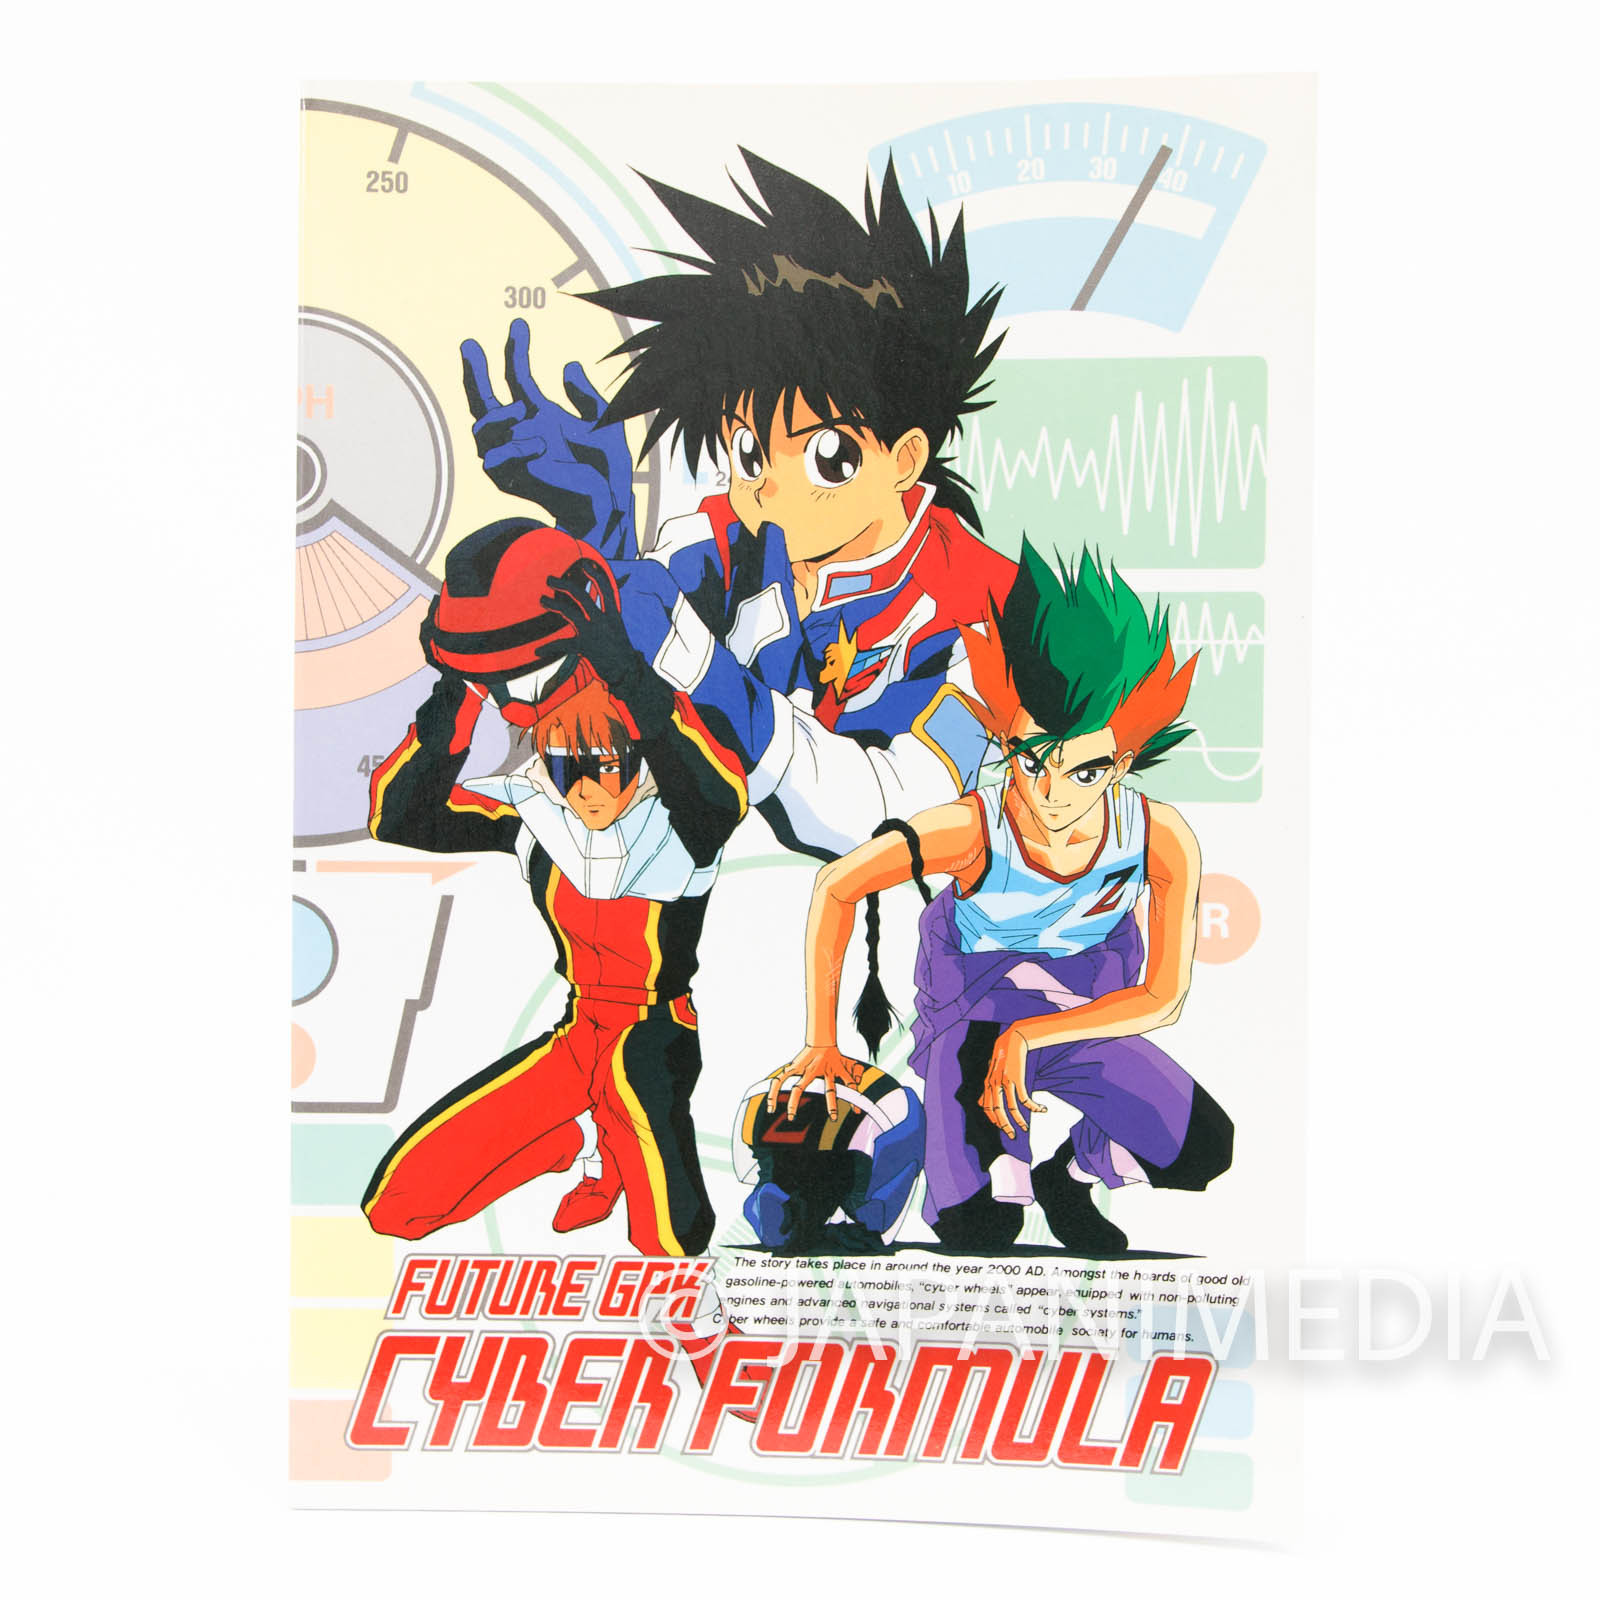 Future GPX Cyber Formula Notebook JAPAN ANIME